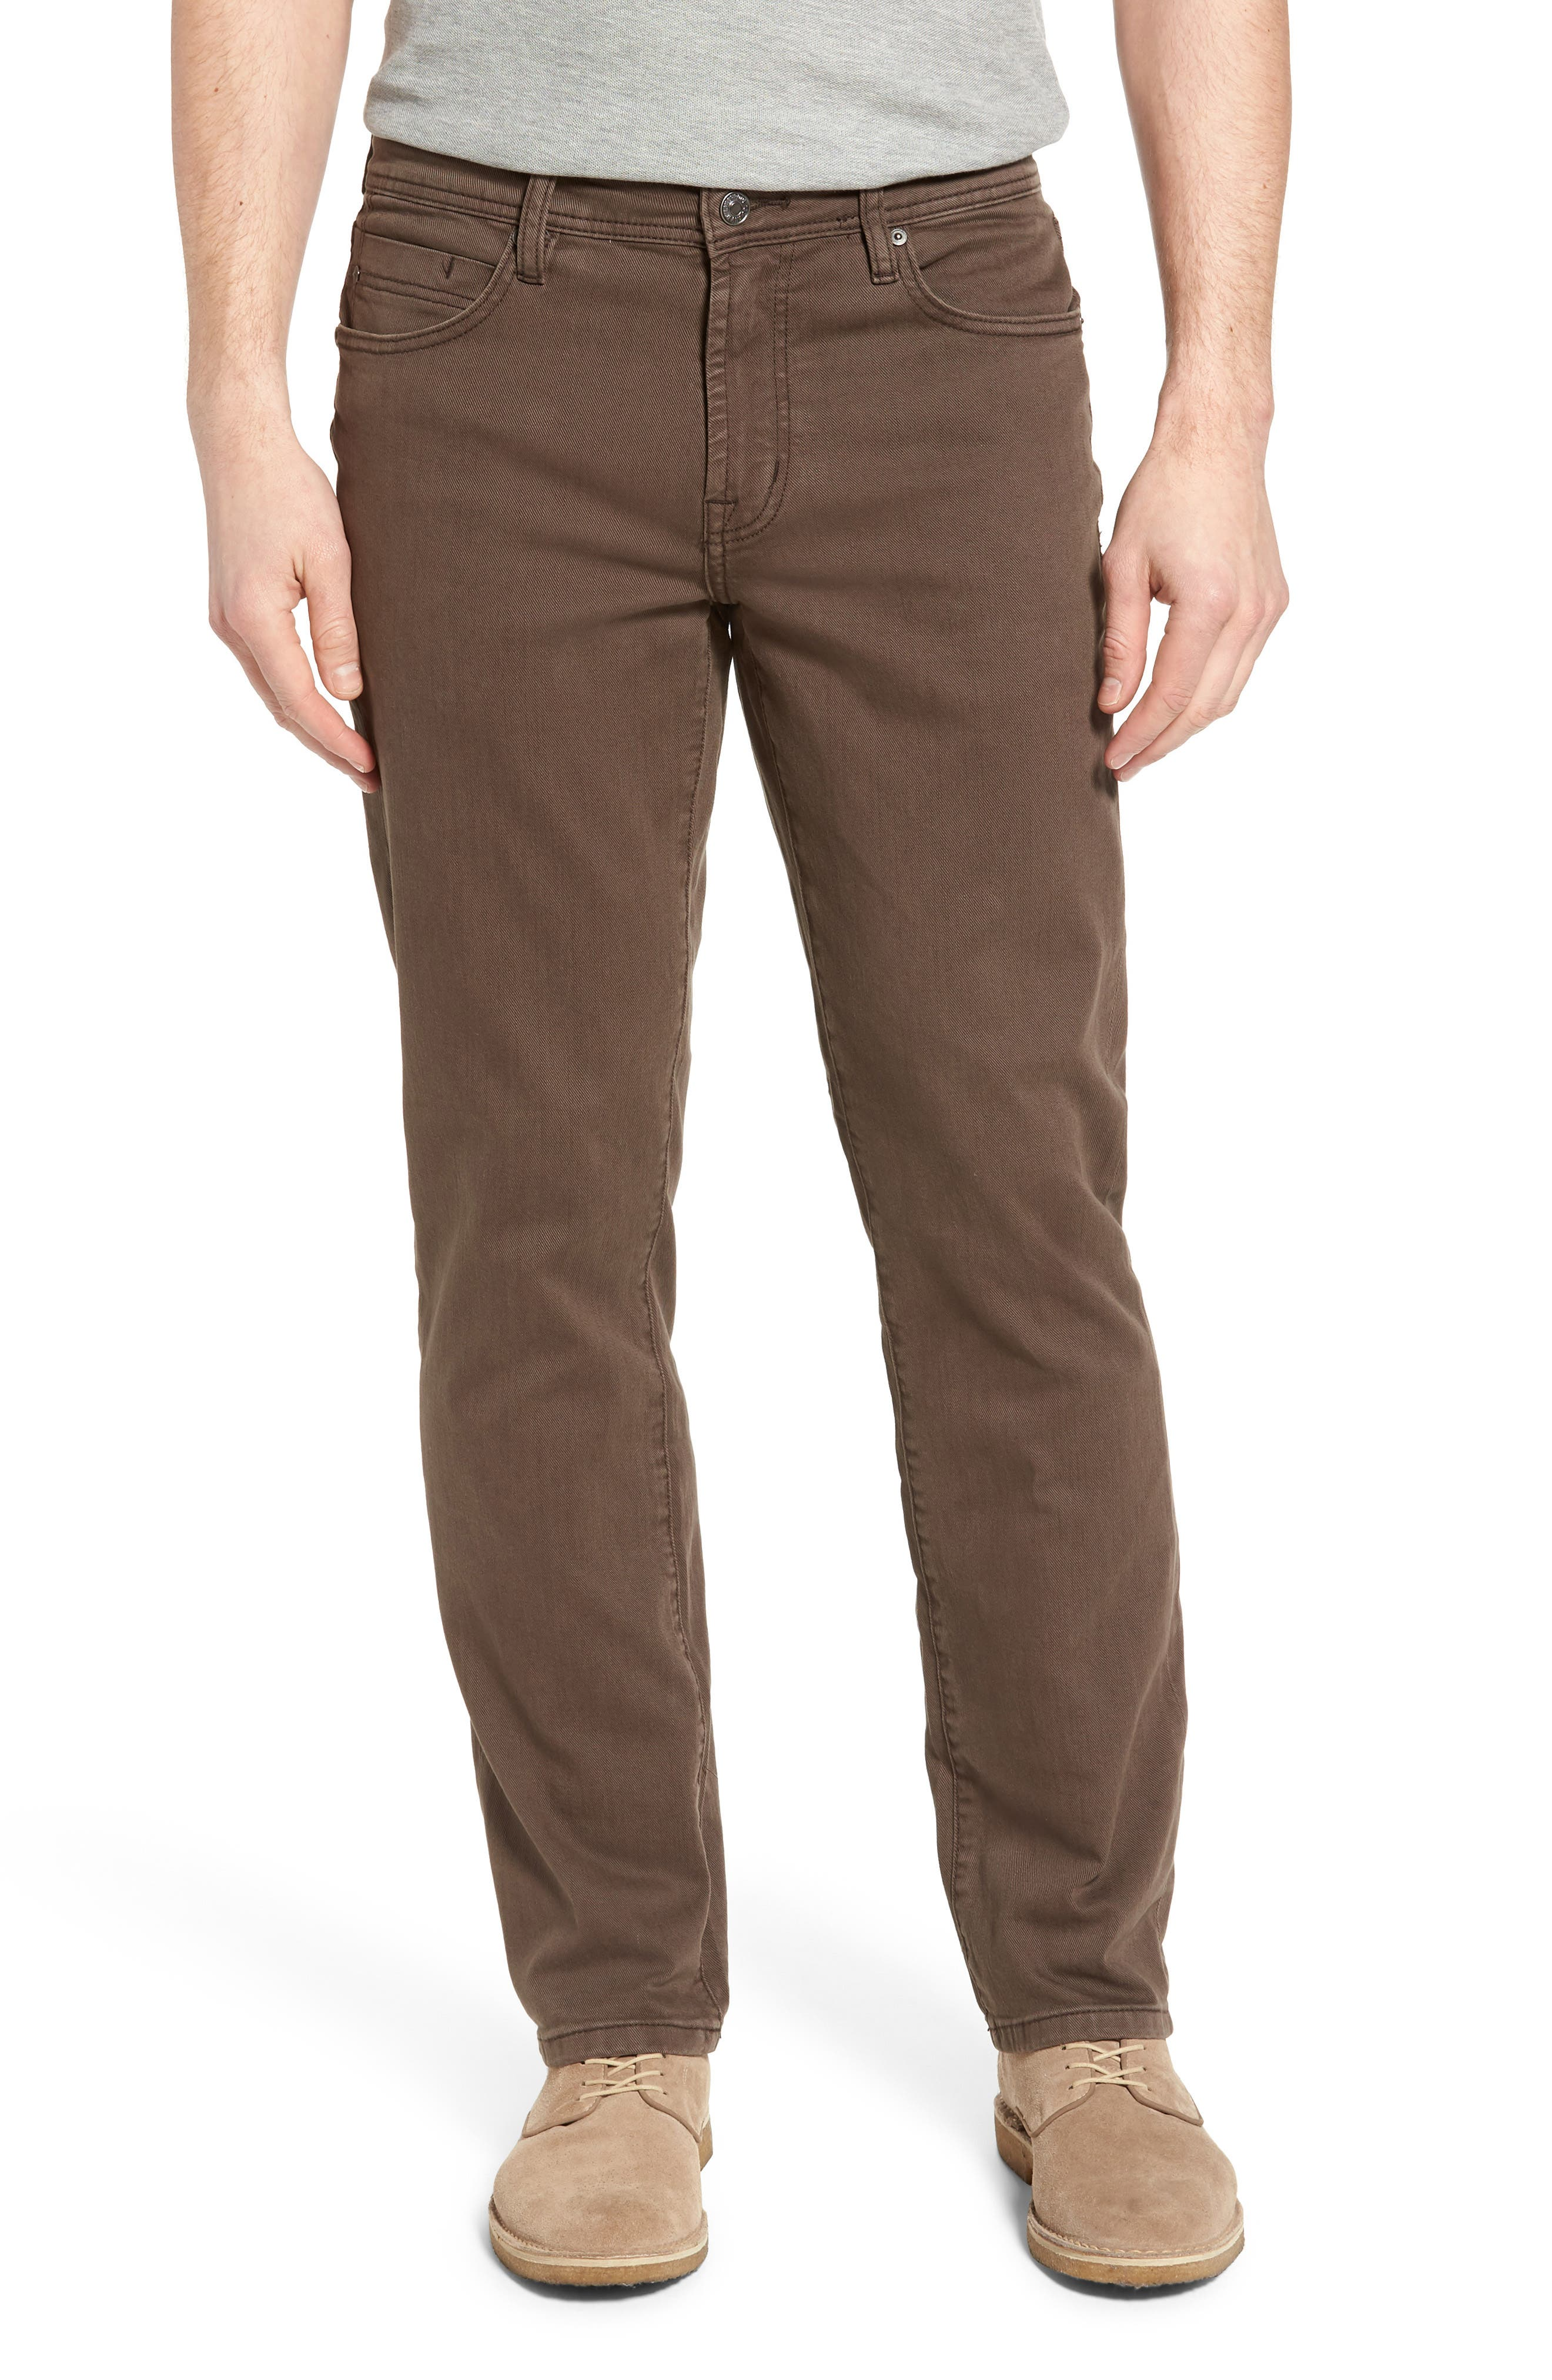 Jeans Co. Regent Relaxed Fit Jeans,                         Main,                         color, Tobacco Leaf